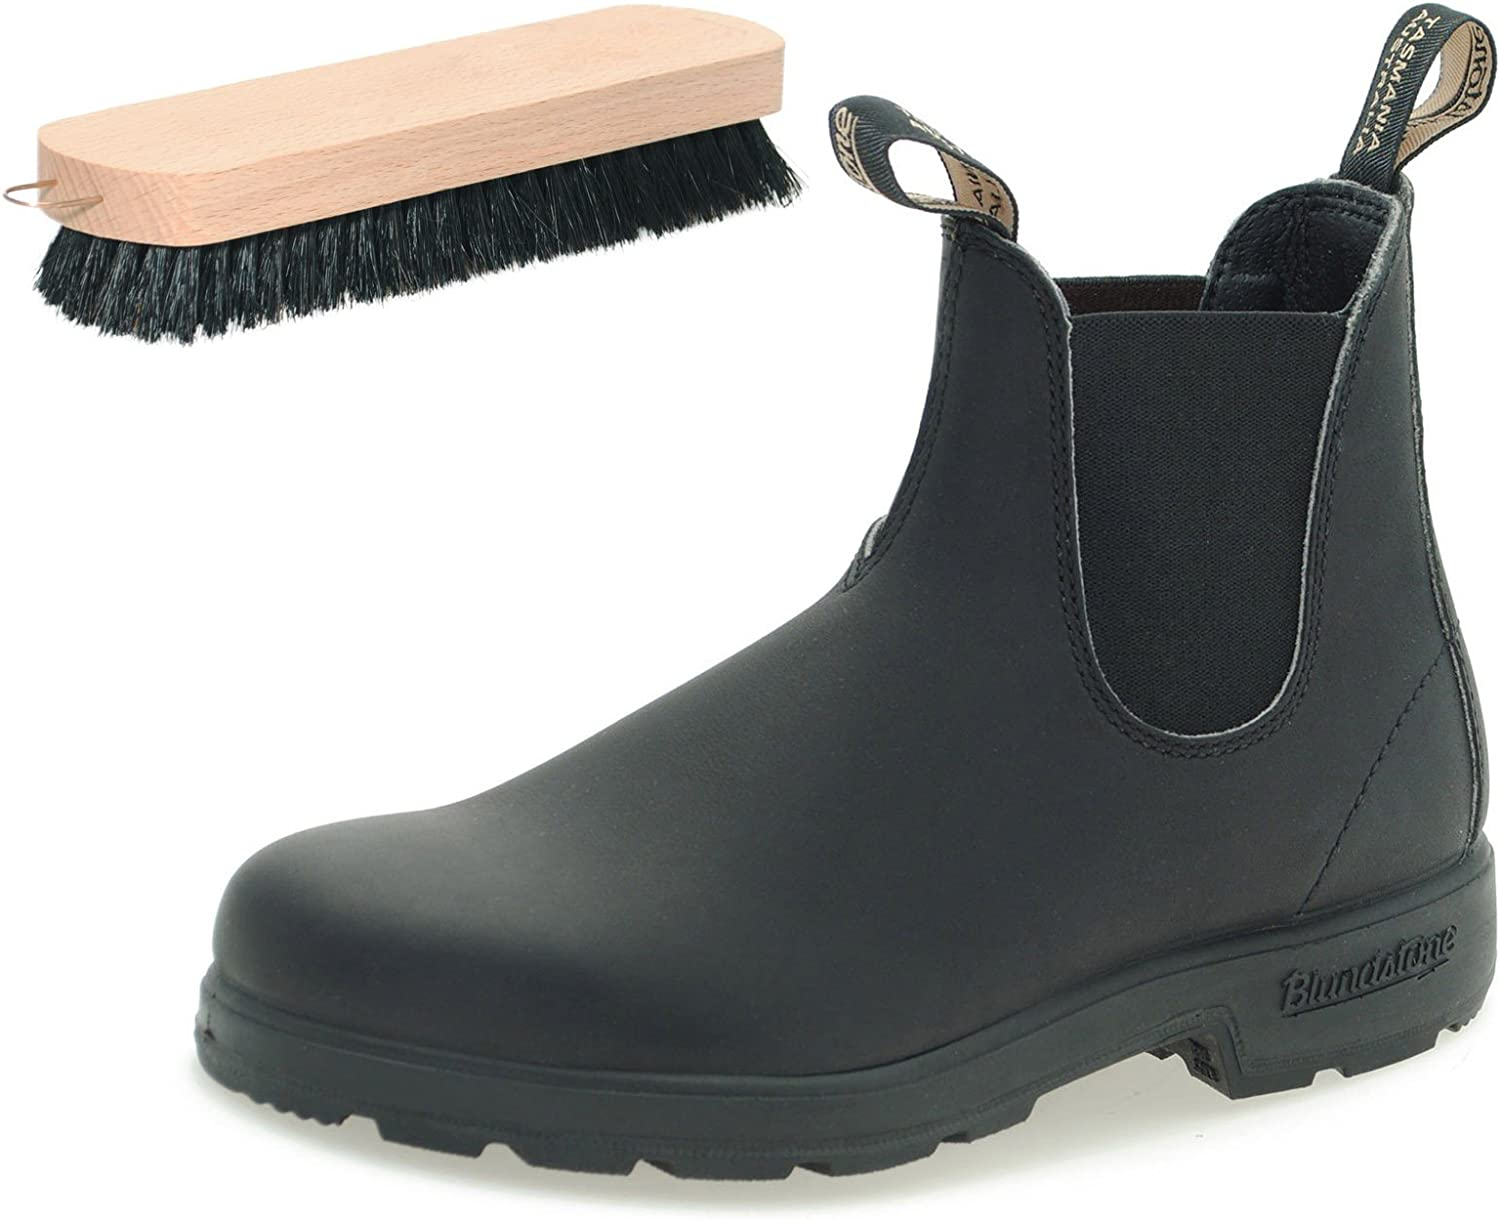 Blundstone Style 510 Black Boots with